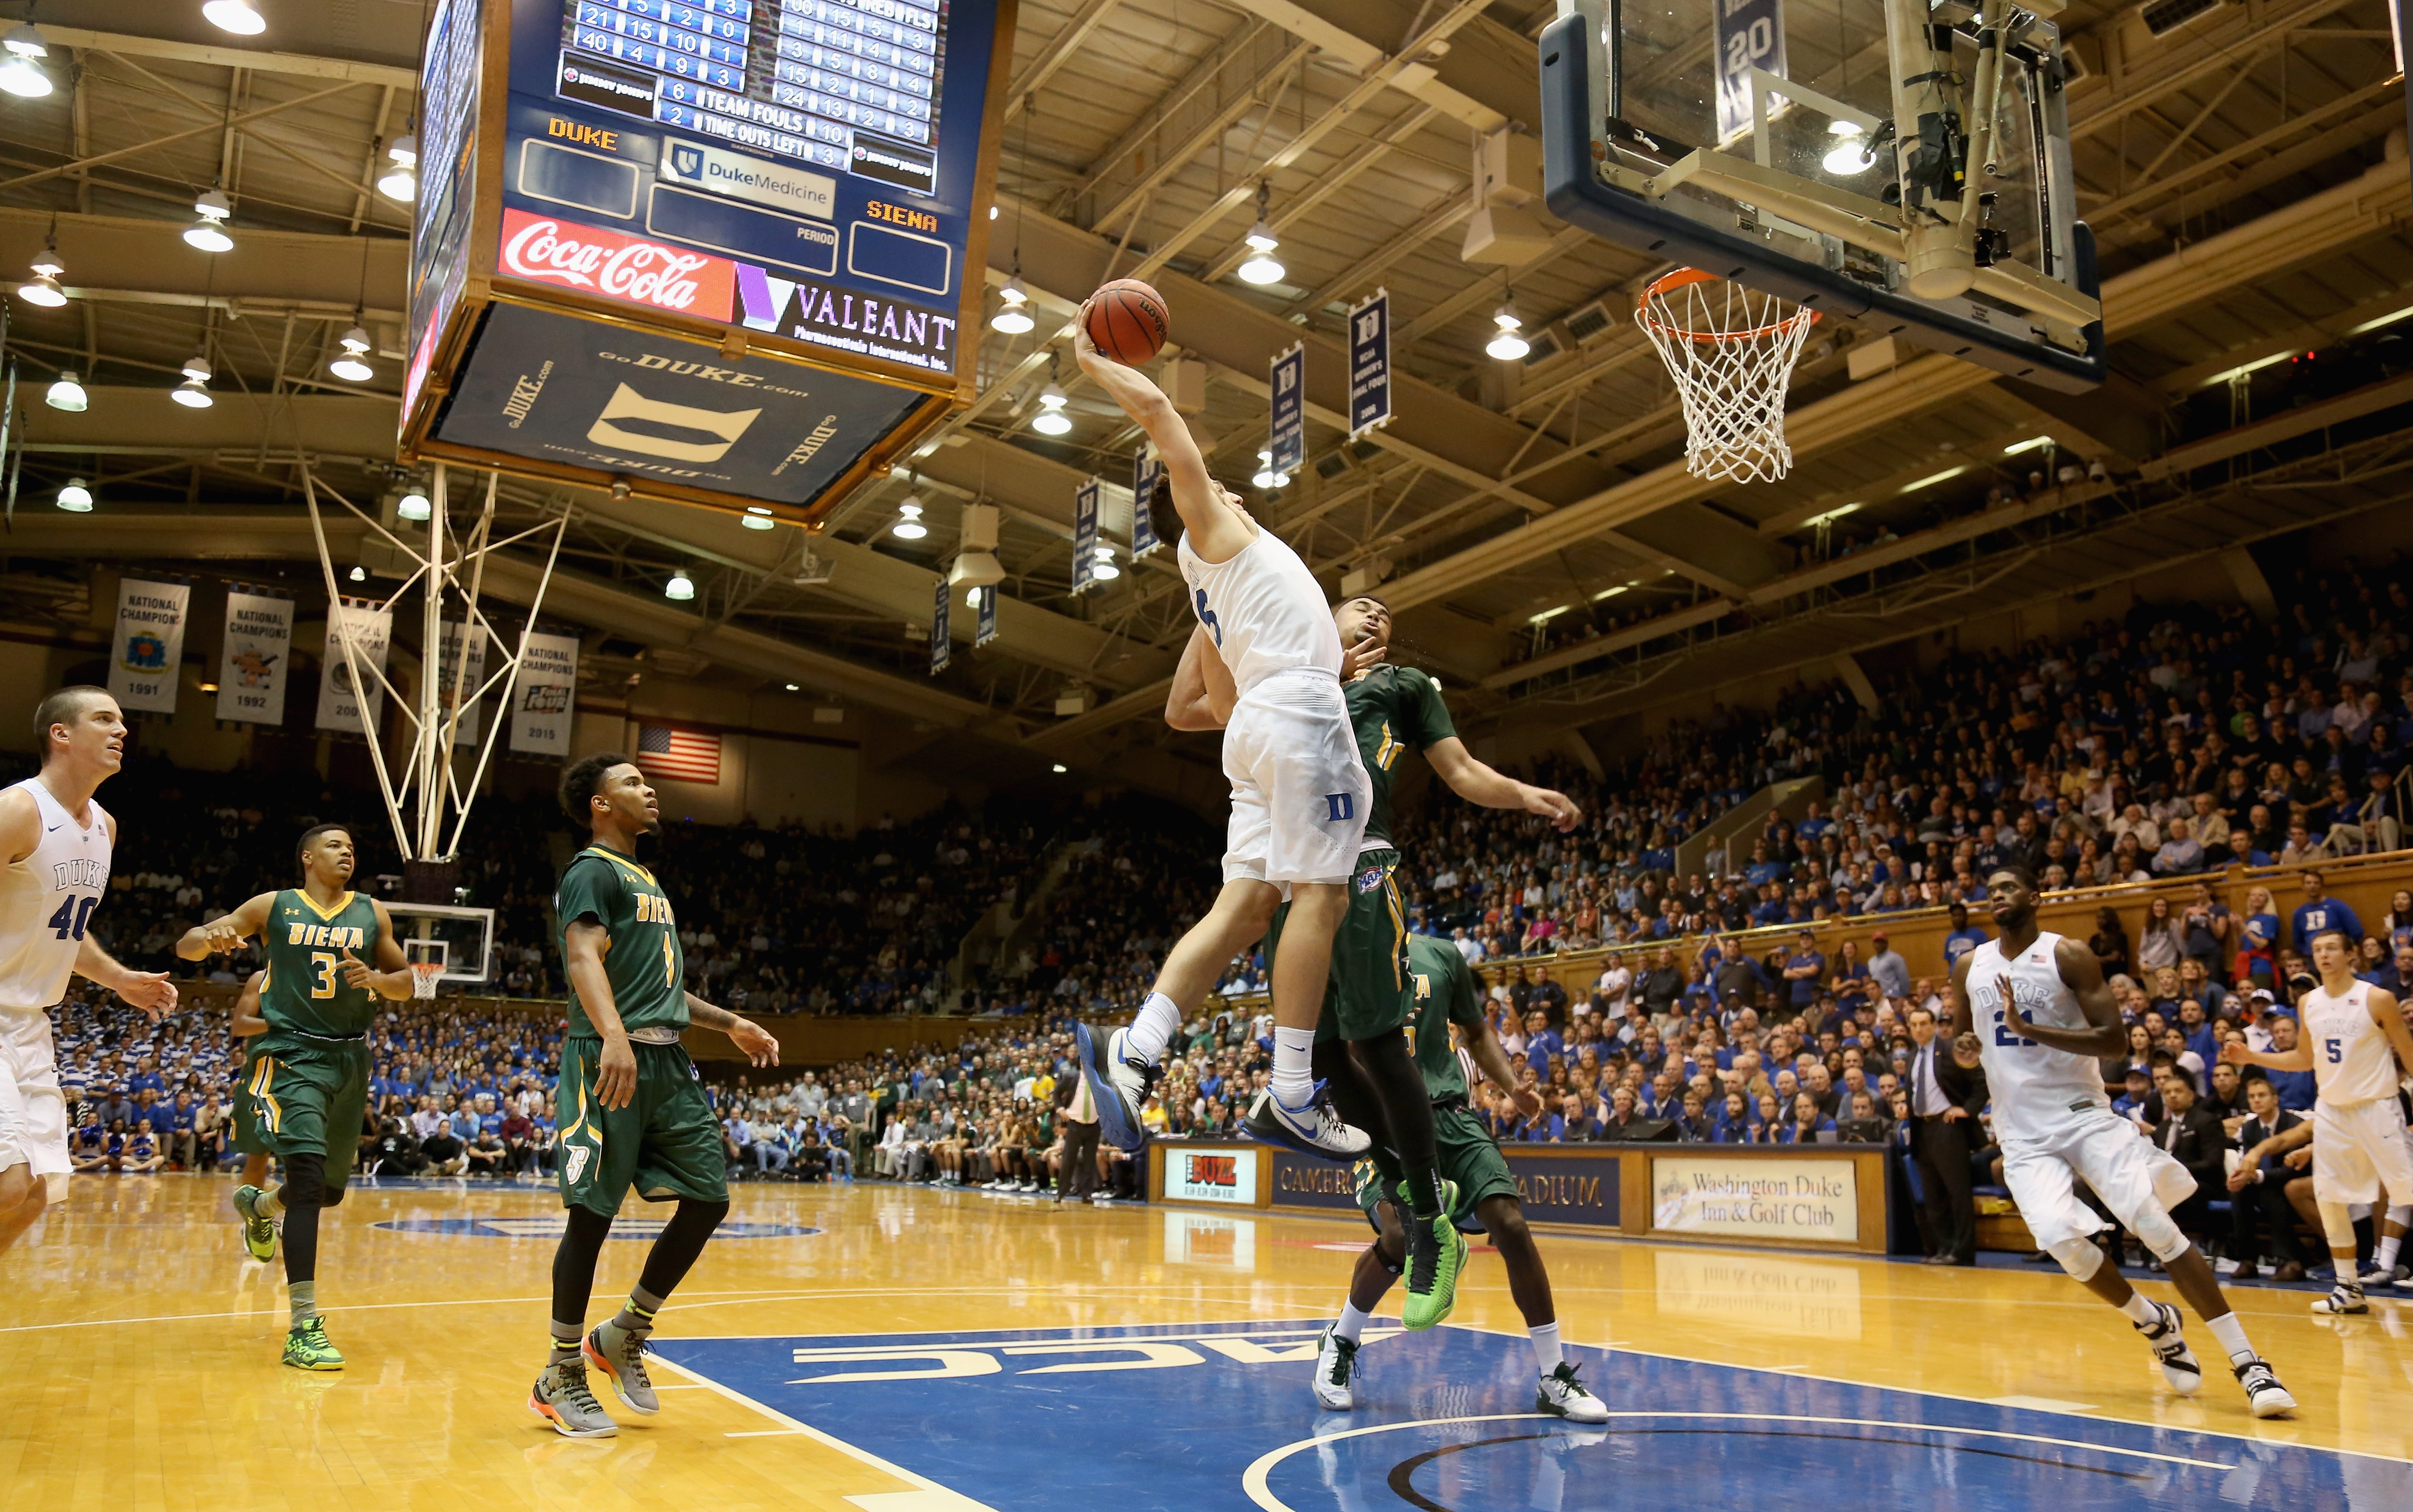 DURHAM, NC - NOVEMBER 13: Grayson Allen #3 of the Duke Blue Devils dunks over Javion Ogunyemi #0 of the Siena Saints during their game at Cameron Indoor Stadium on November 13, 2015 in Durham, North Carolina. (Photo by Streeter Lecka/Getty Images)